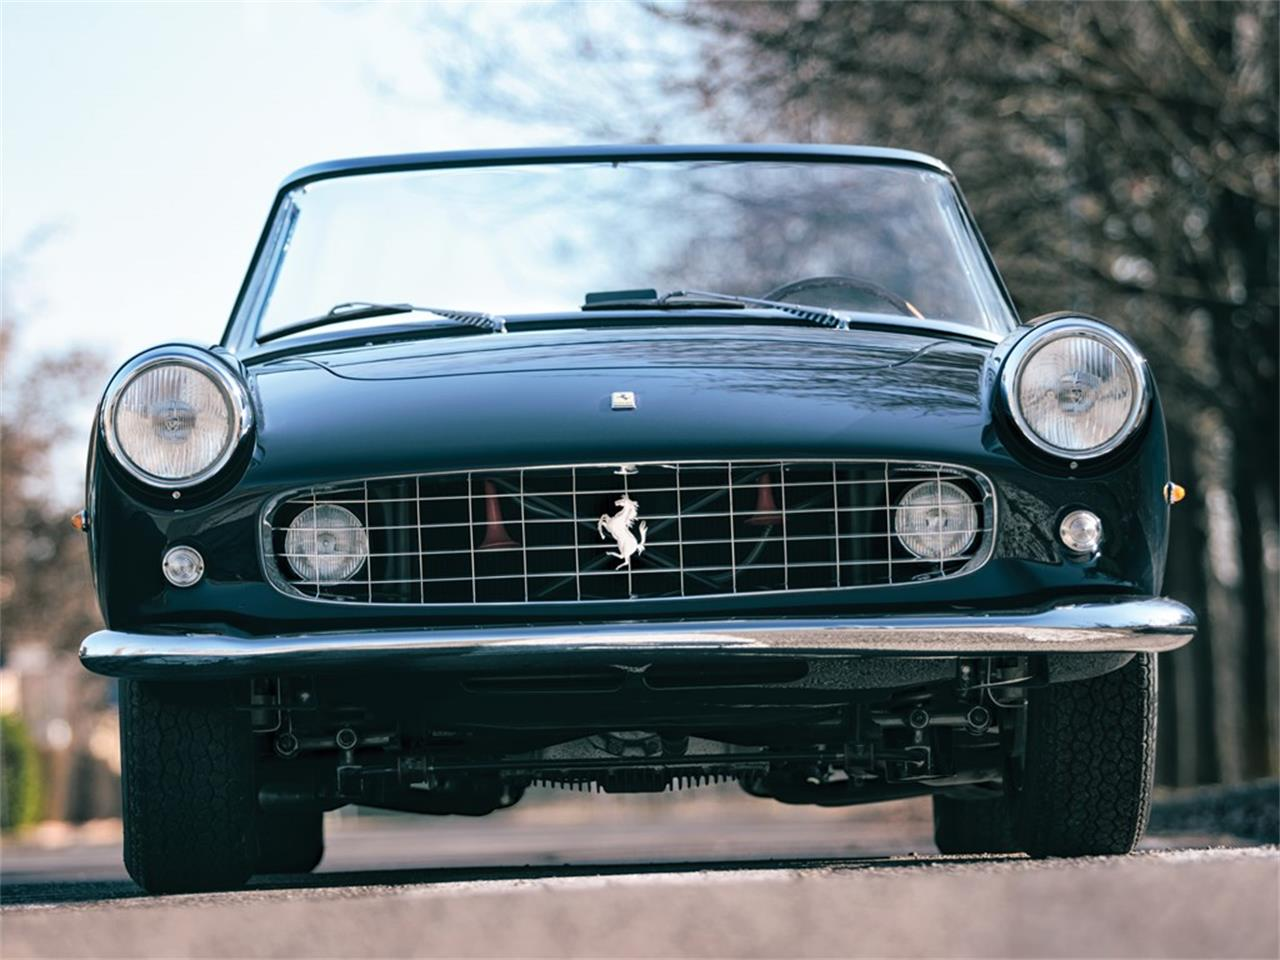 Large Picture of 1960 250 GT Cabriolet Series II Auction Vehicle Offered by RM Sotheby's - PGXI